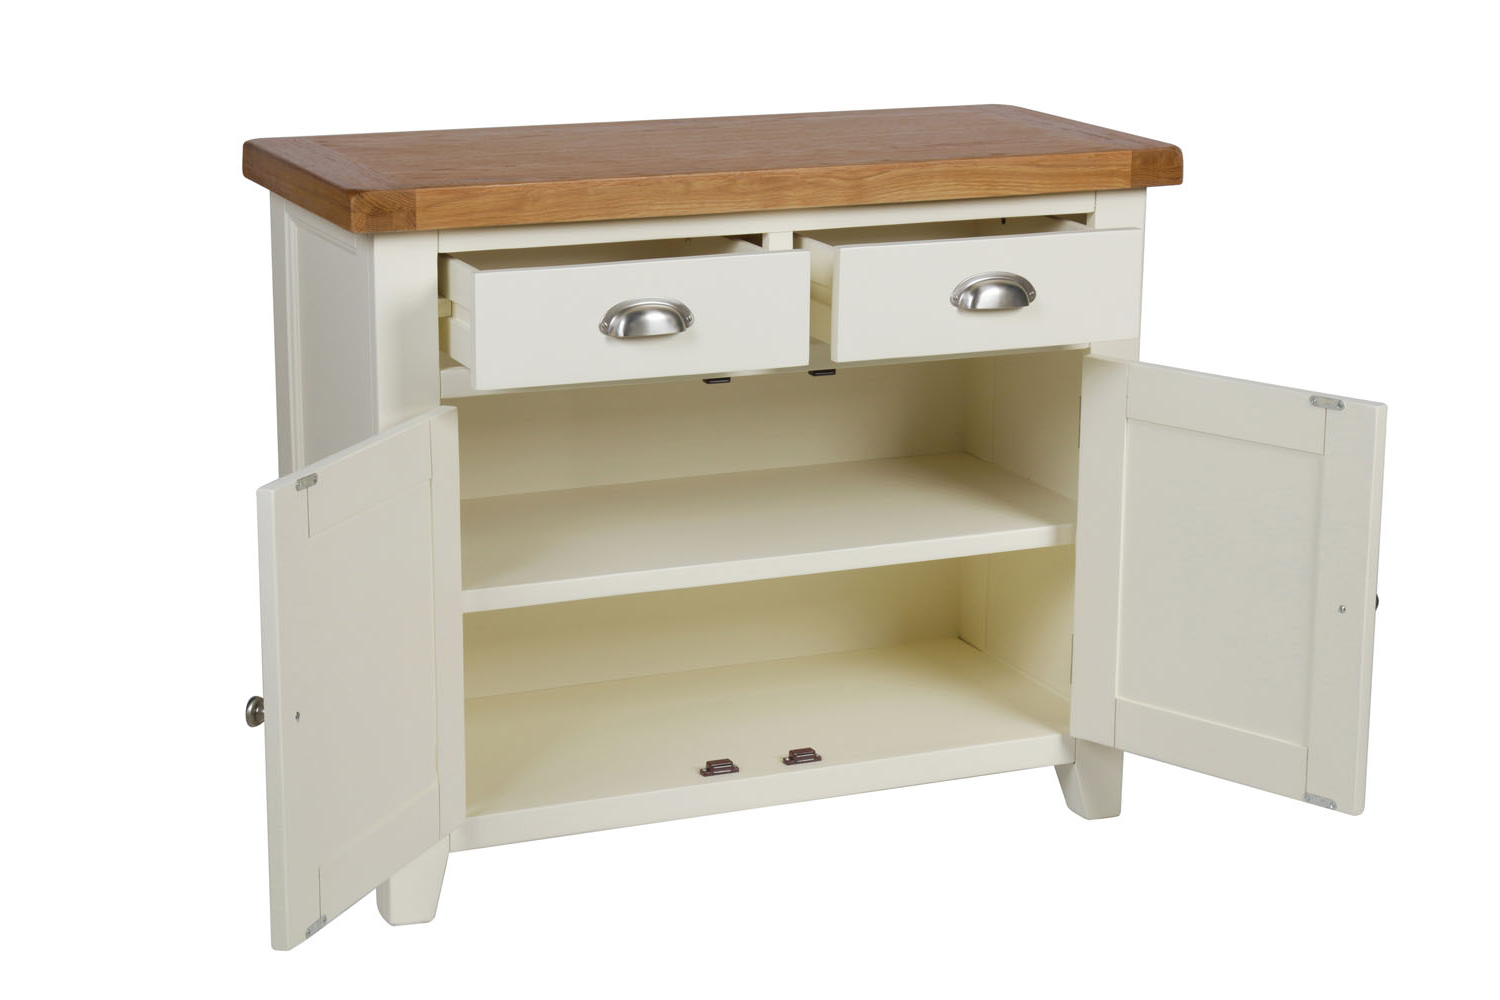 Country Cottage 100cm Cream Painted Oak Sideboard Within Rutherford Sideboards (View 18 of 20)